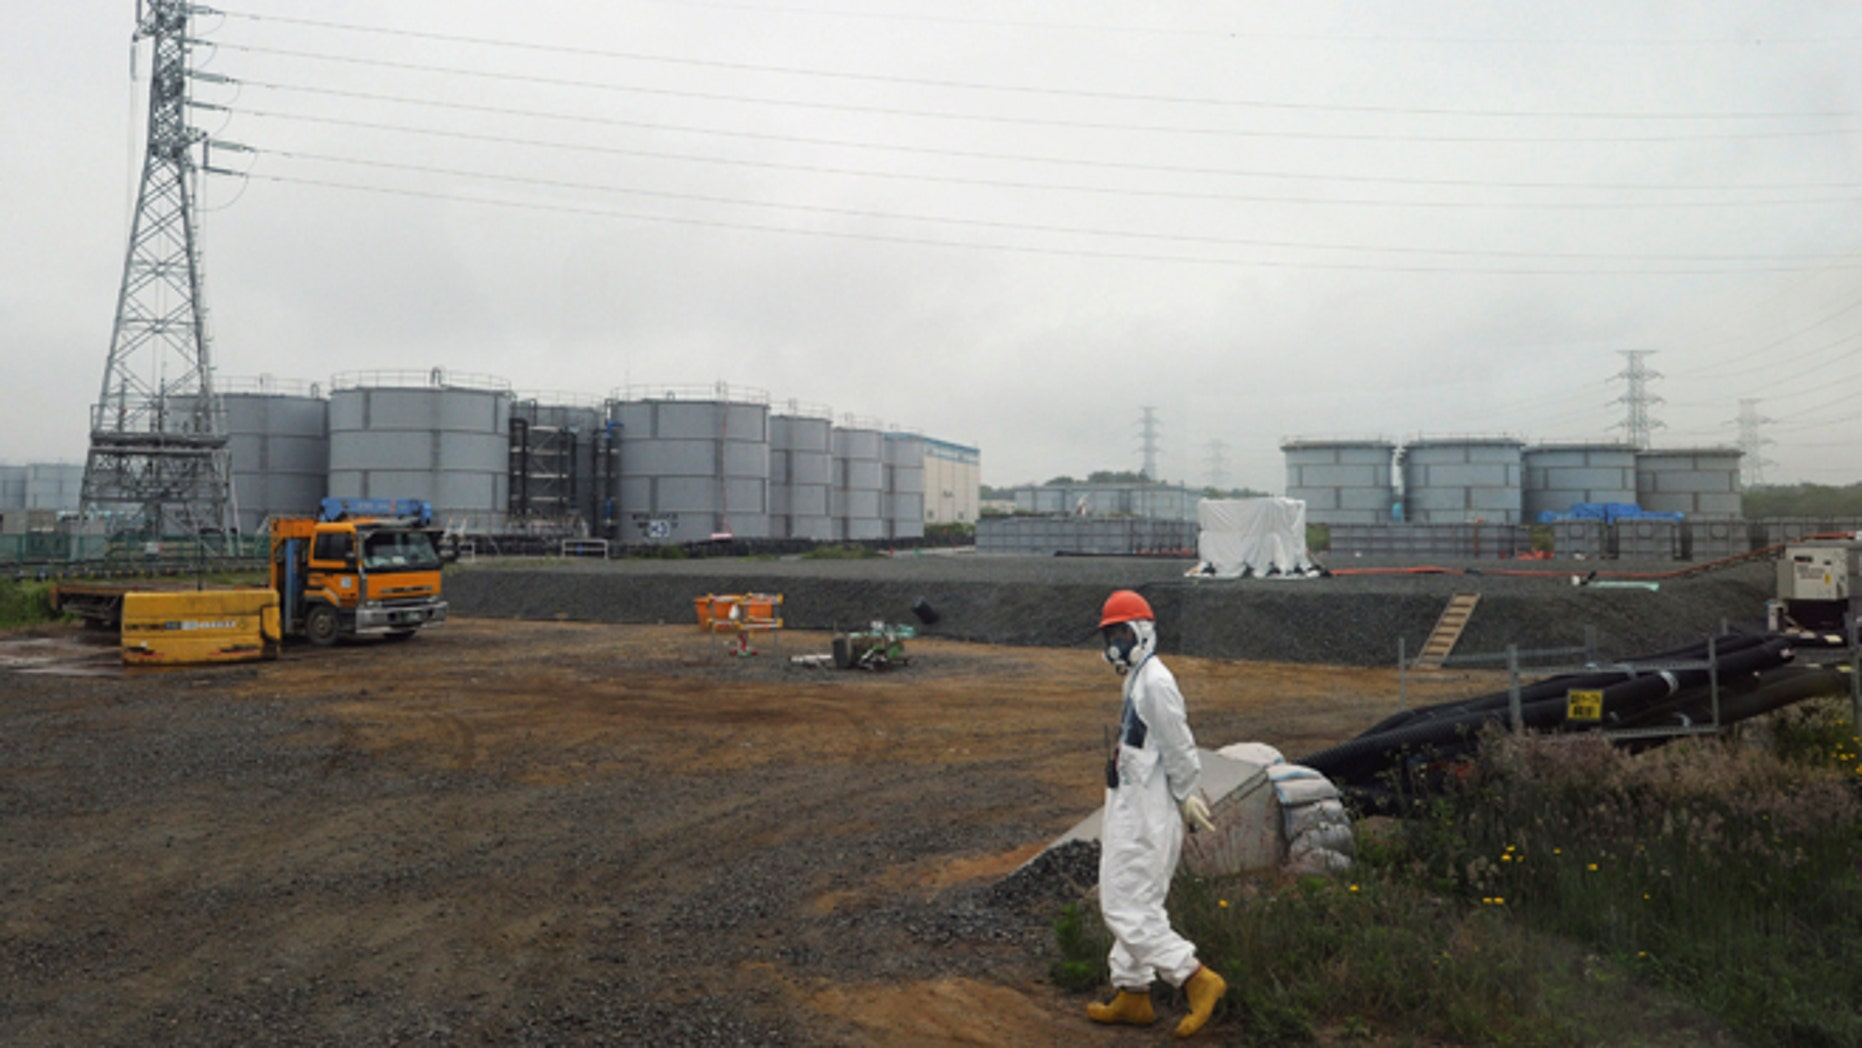 June 12, 2013: In this file photo, a construction worker walks beside the underground water tanks at the Fukushima Dai-ichi nuclear plant at Okuma in Fukushima prefecture, Japan. The operator of Japan's tsunami-crippled nuclear power plant said Tuesday, Aug. 20, 2013, that about 300 tons of highly radioactive water have leaked from one of the hundreds of storage tanks there - its worst leak yet from one of the vessels.